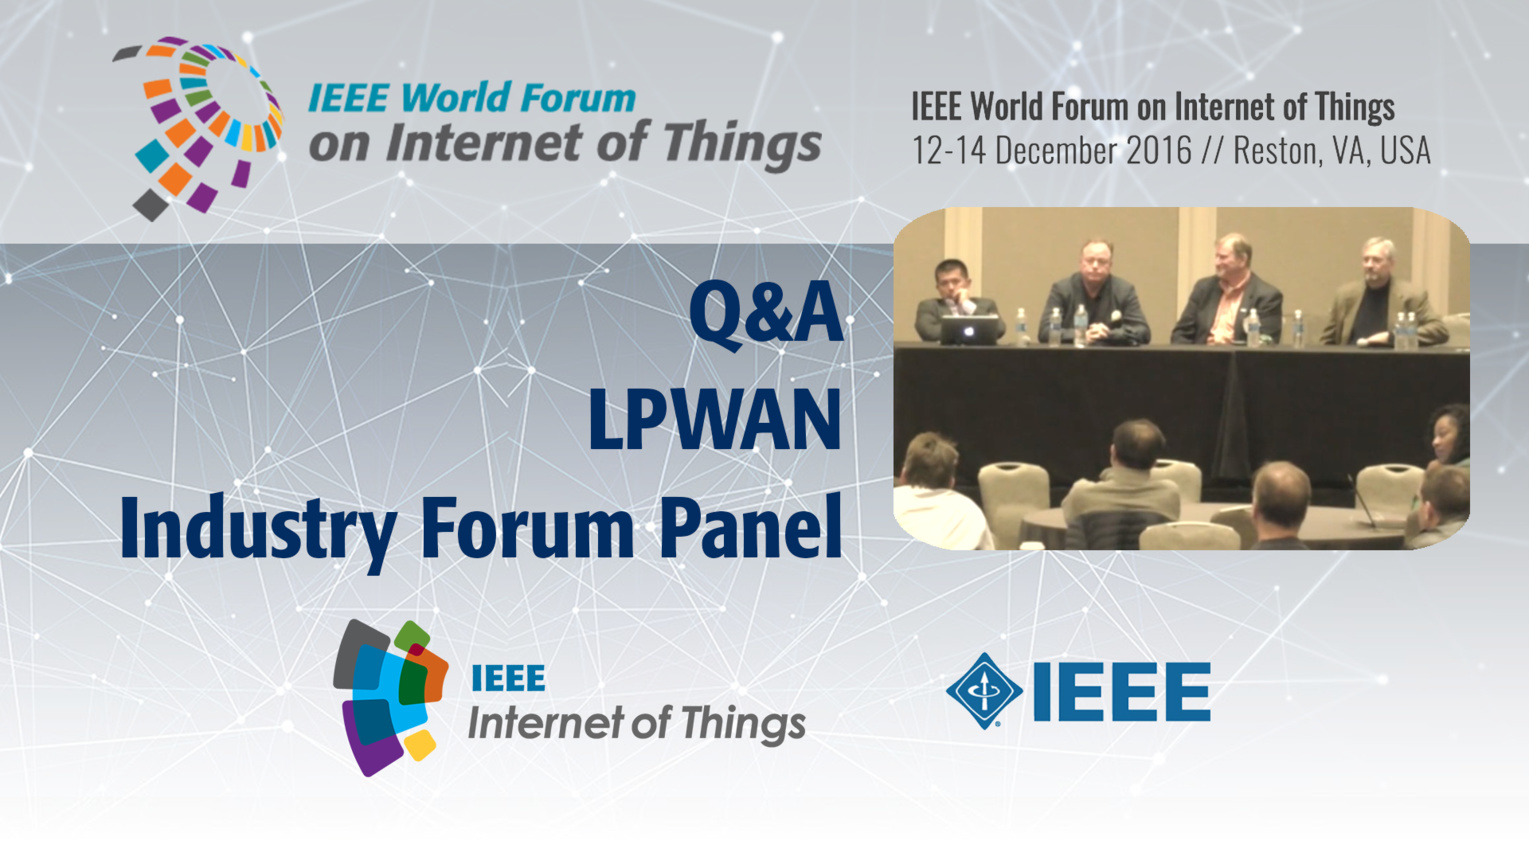 Q&A - LPWAN Industry Forum Panel: WF-IoT 2016